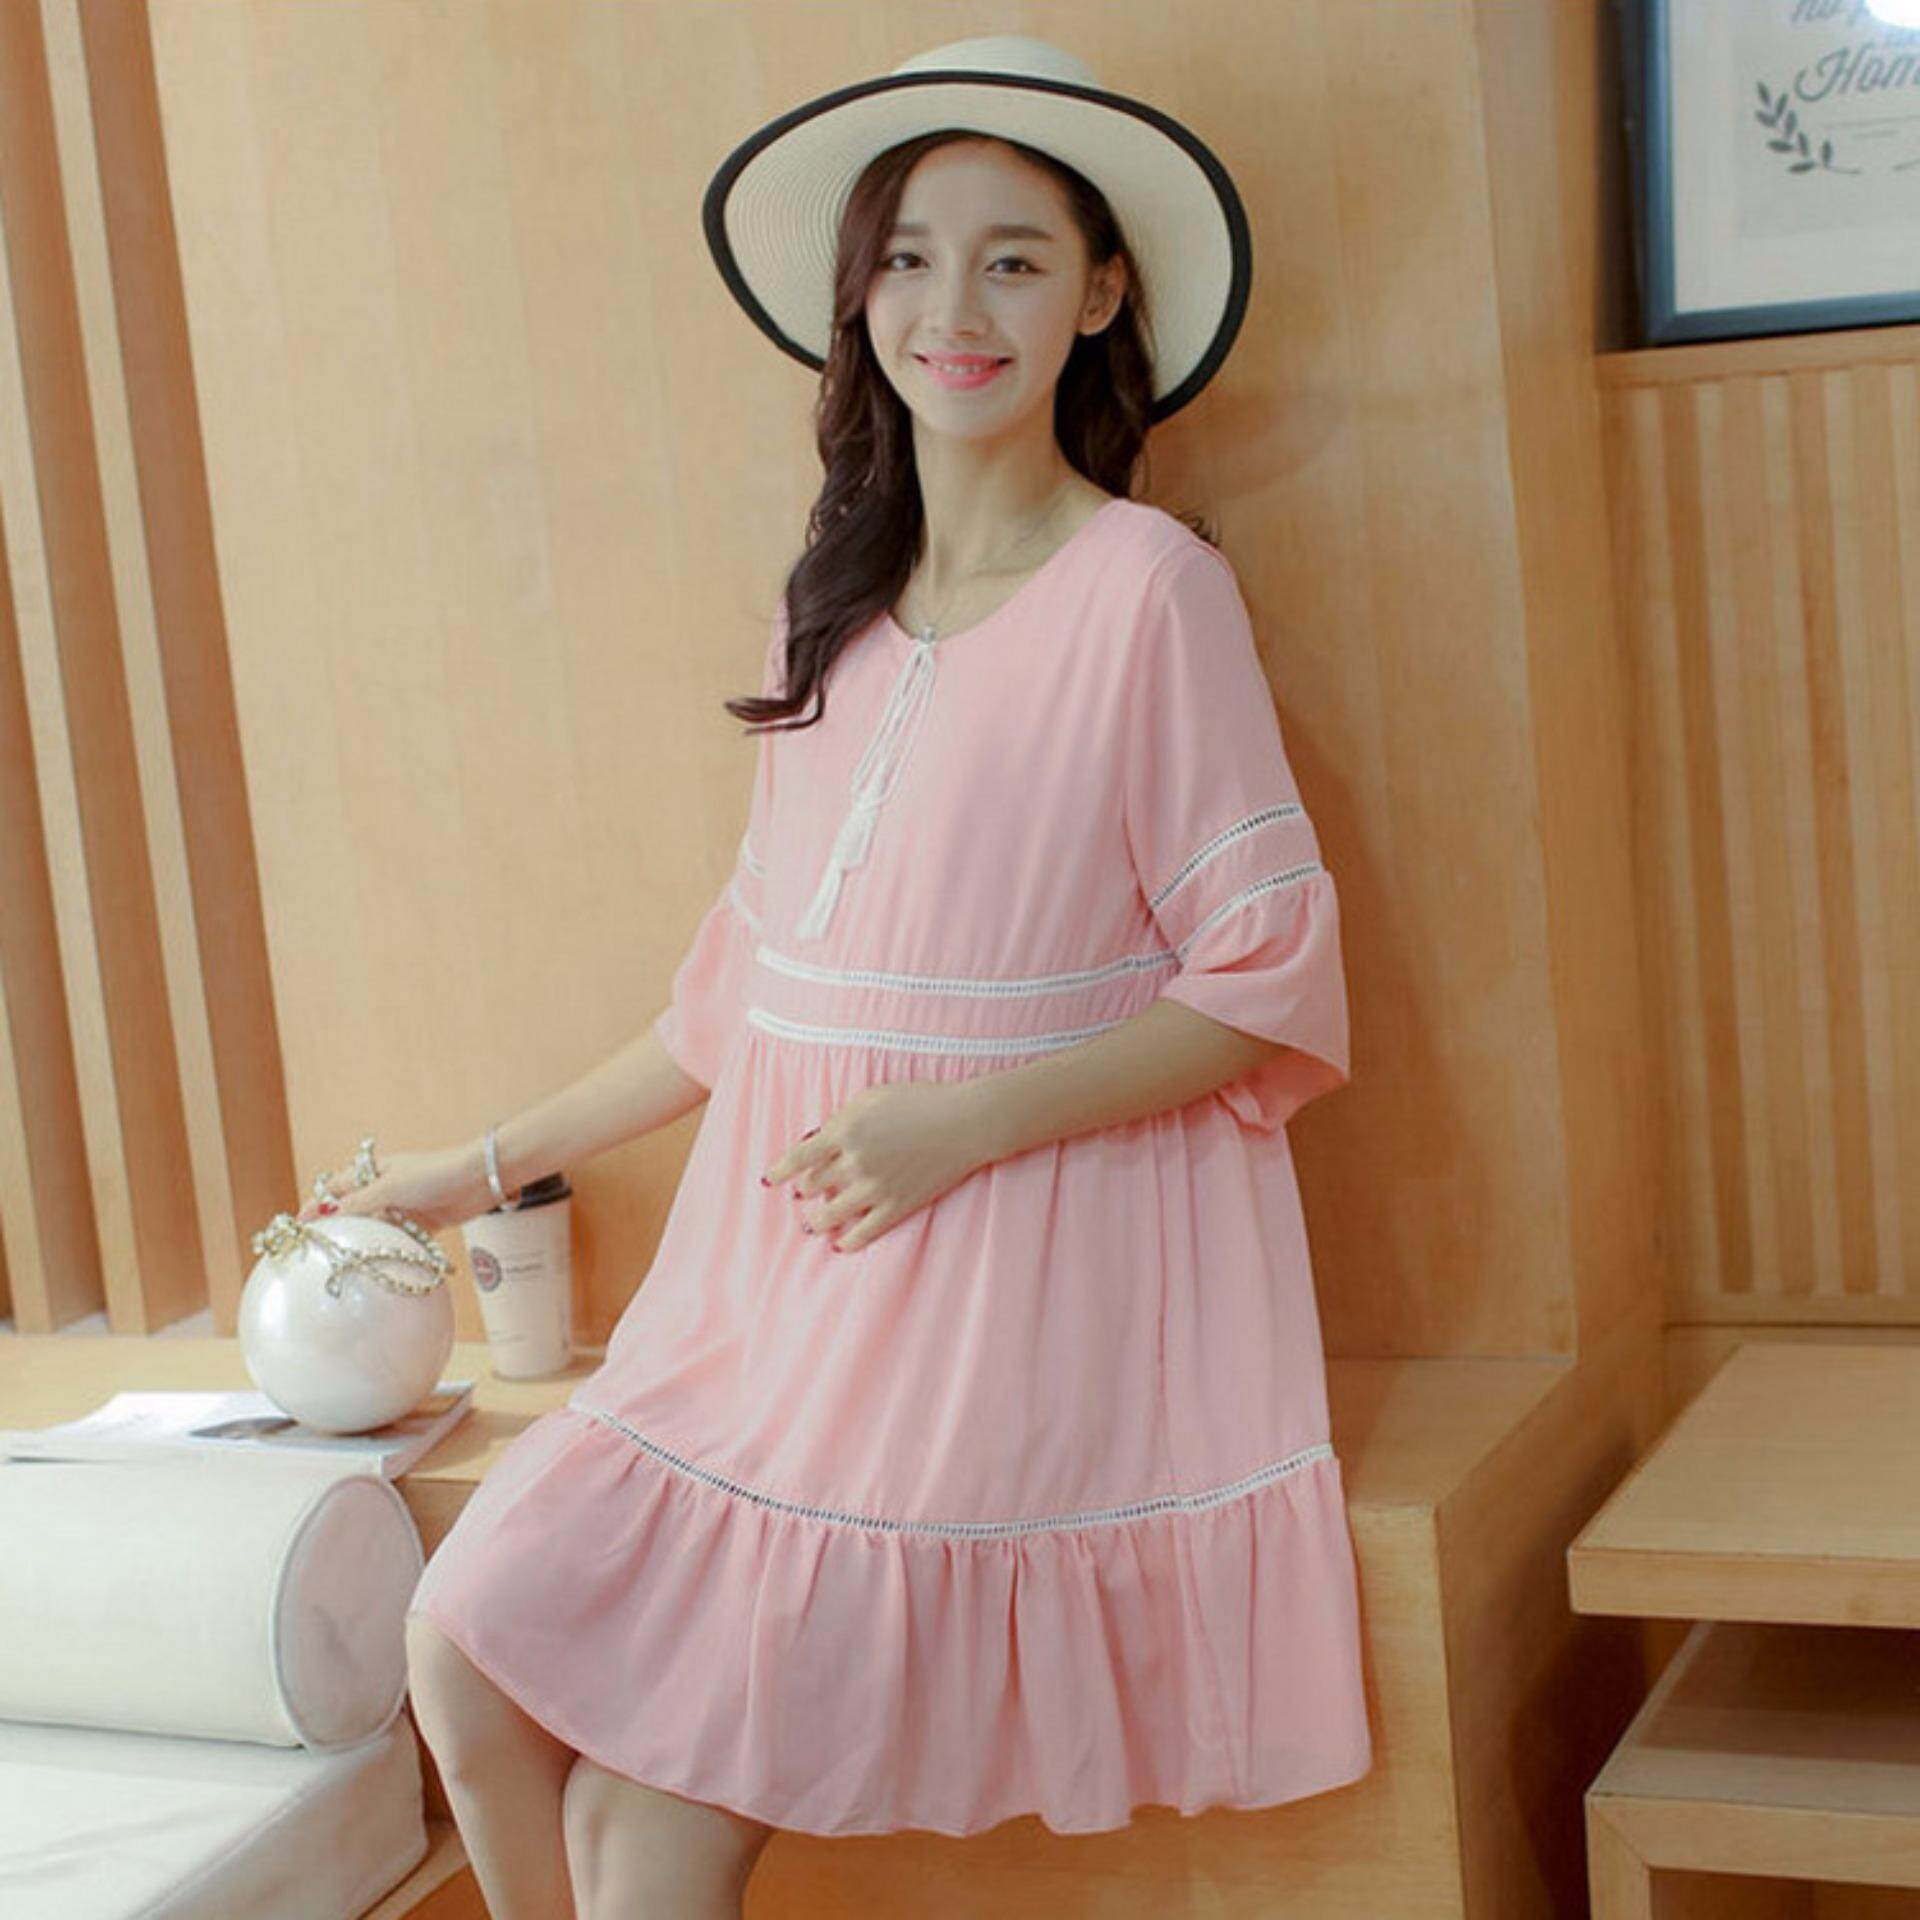 Cotton maternity dresses loose a line pregnancy dress pink cotton maternity dresses loose a line pregnancy dress pink lazada malaysia ombrellifo Gallery